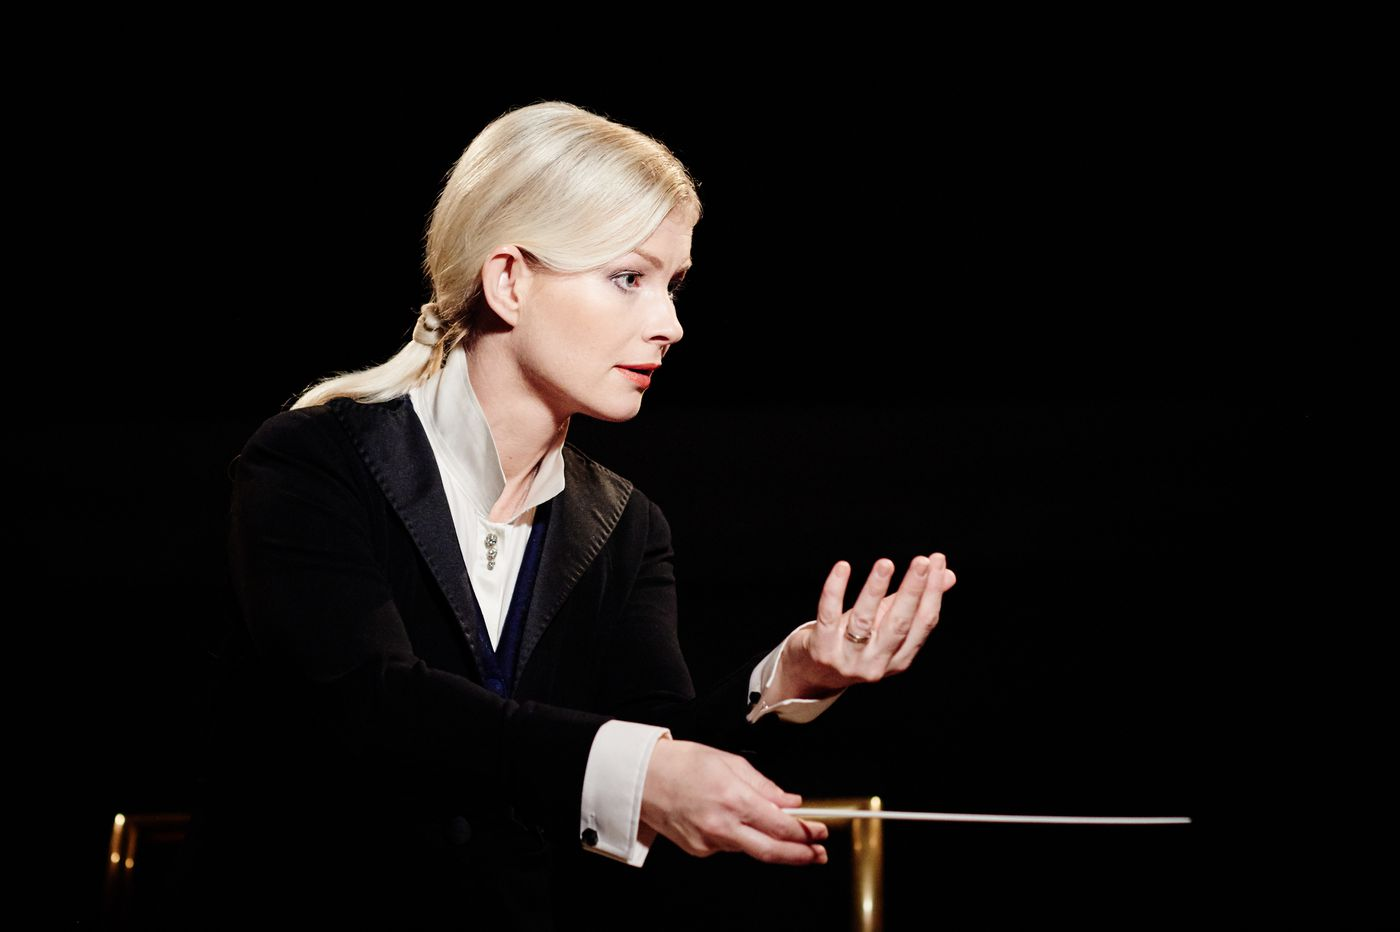 After outcry, Philadelphia Orchestra adds female composers to its 2018-19 roster